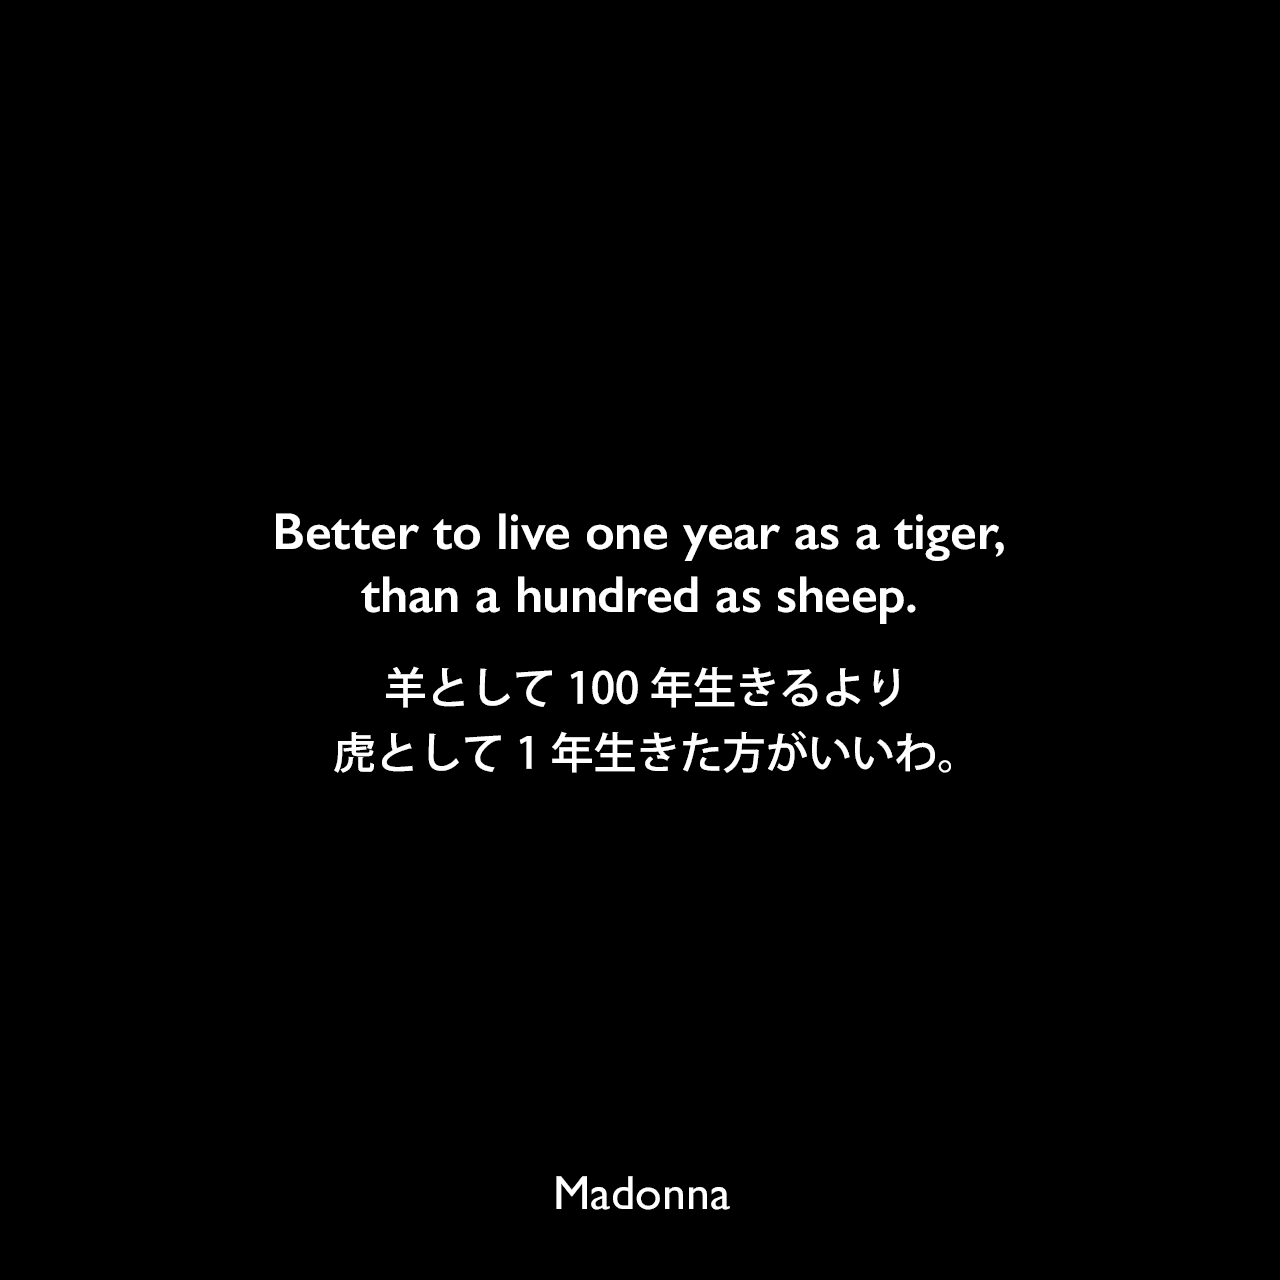 Better to live one year as a tiger, than a hundred as sheep.羊として100年生きるより、虎として1年生きた方がいいわ。- The Insider誌「Madonna: 50 Years Of Wit And Wisdom」よりMadonna